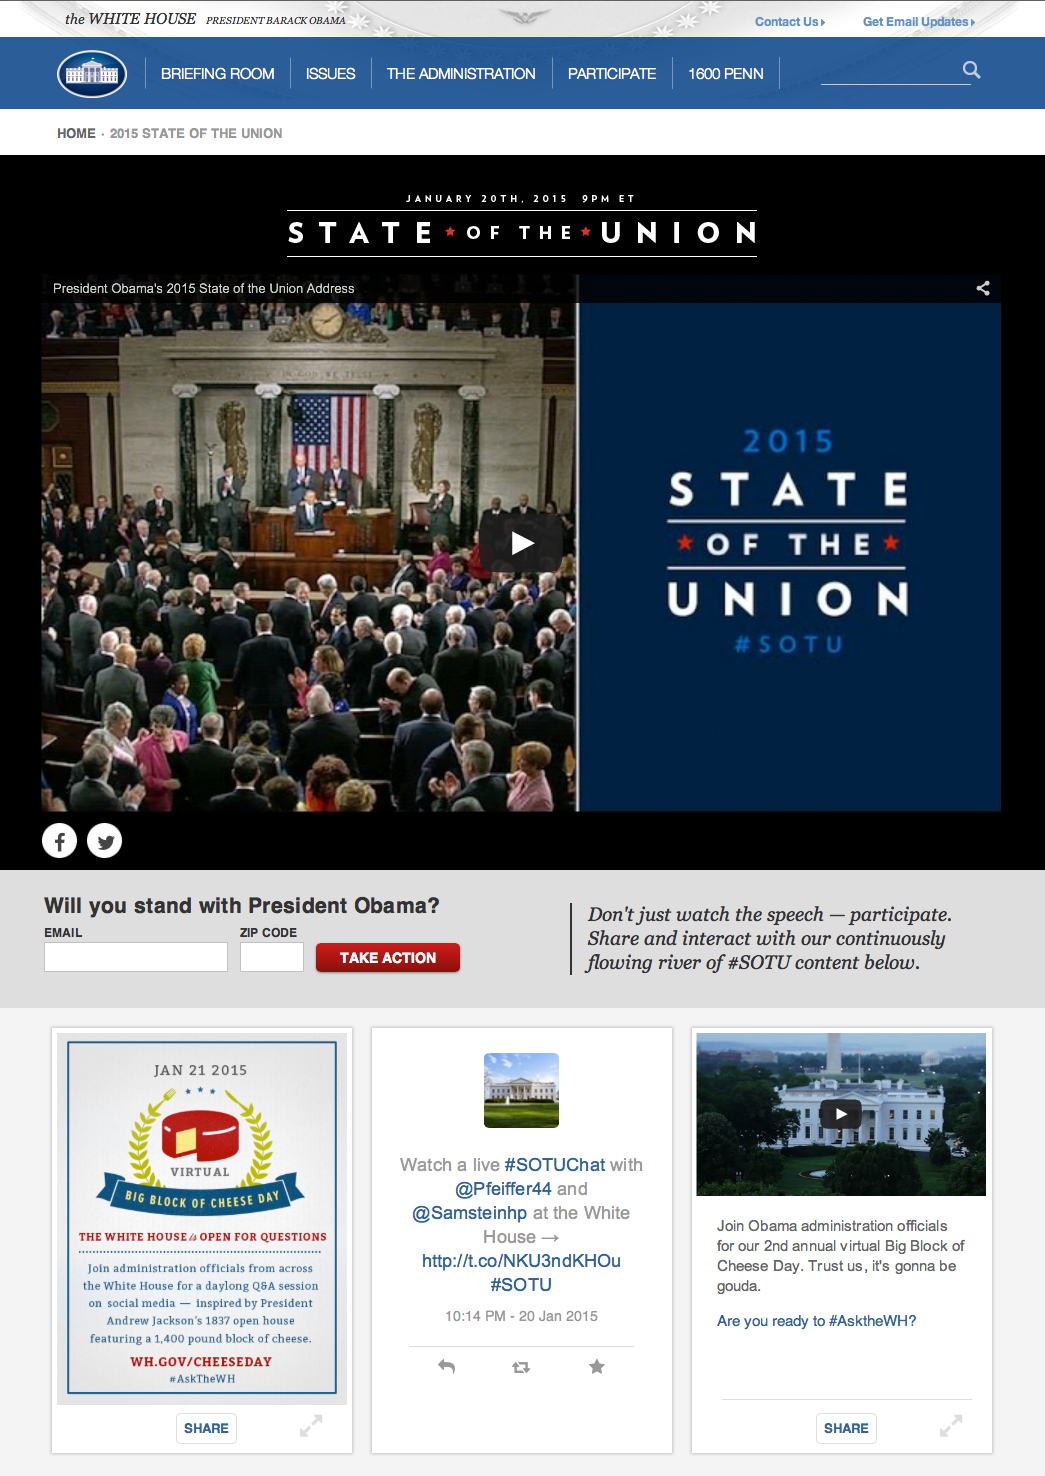 screenshot image of the 2015 State of the Union page